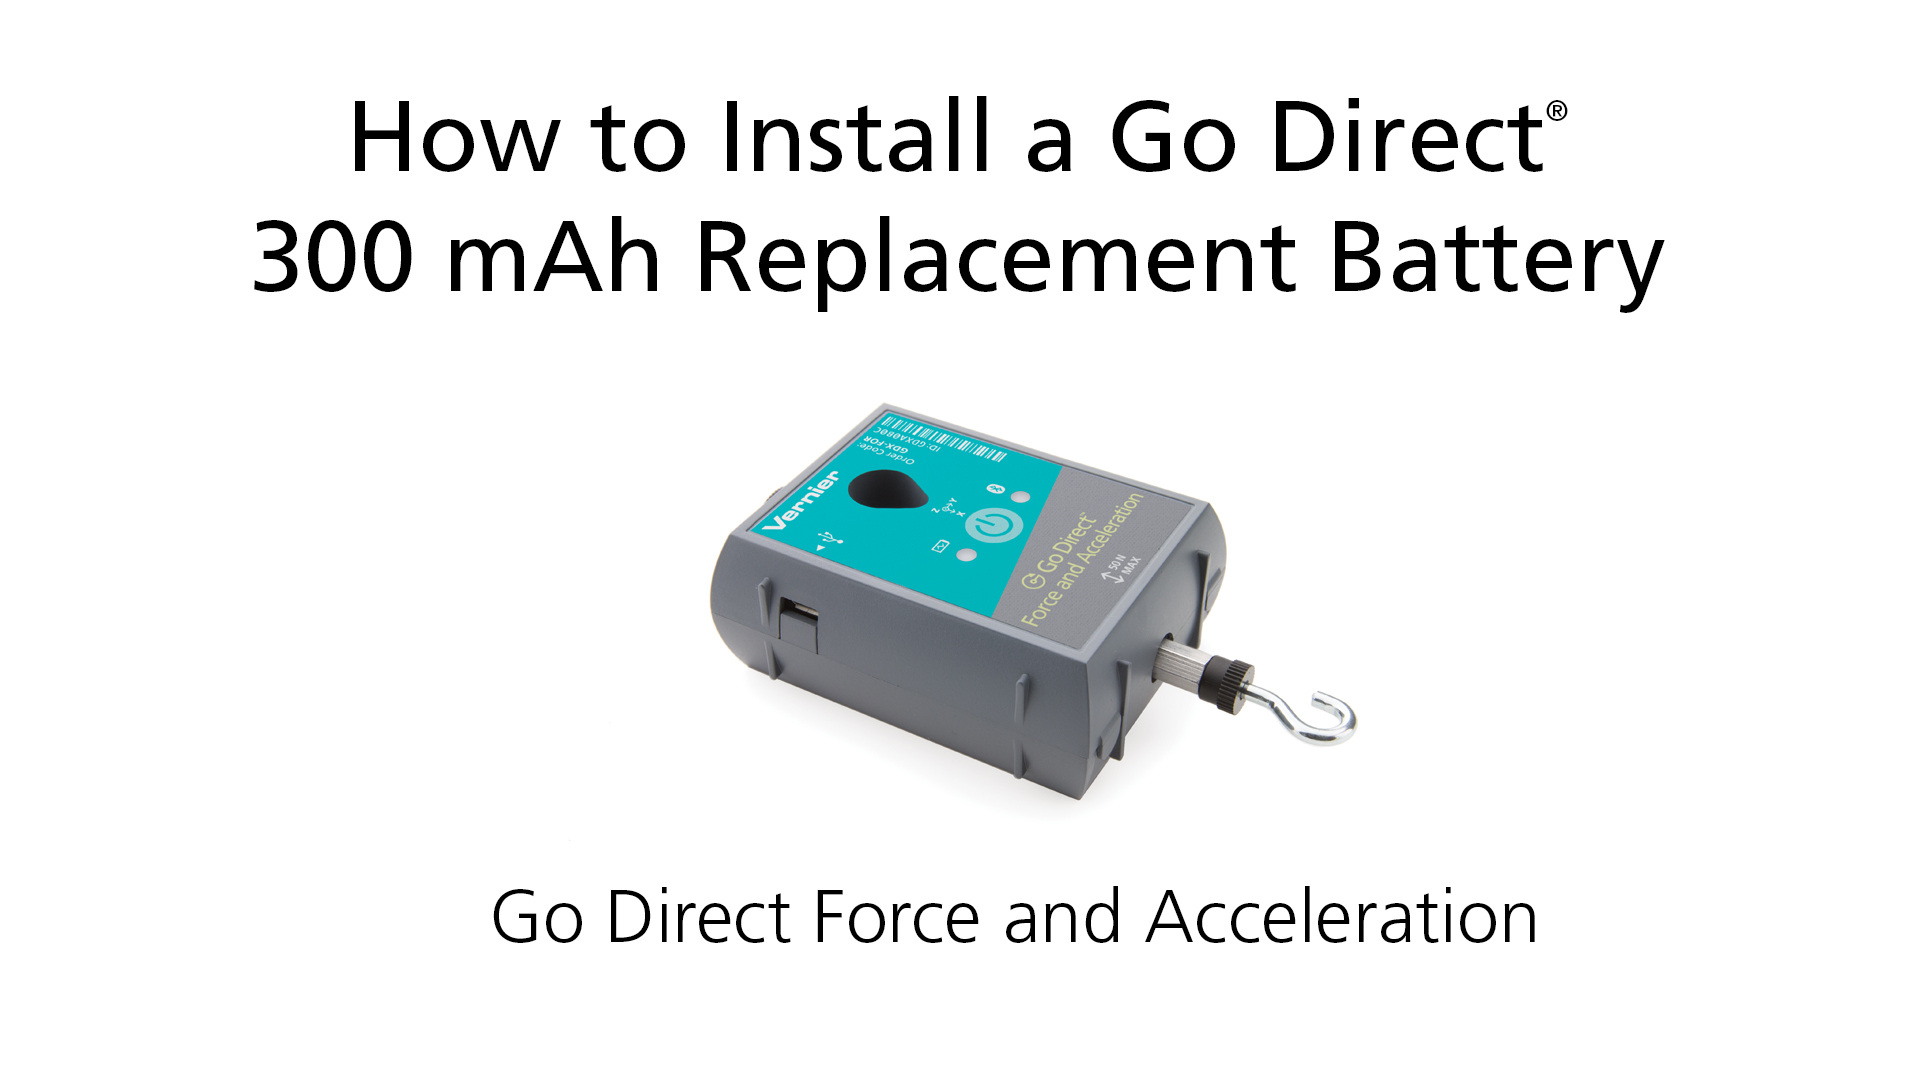 How to Install a Go Direct® 300 mAh Replacement Battery in Go Direct Force and Acceleration video